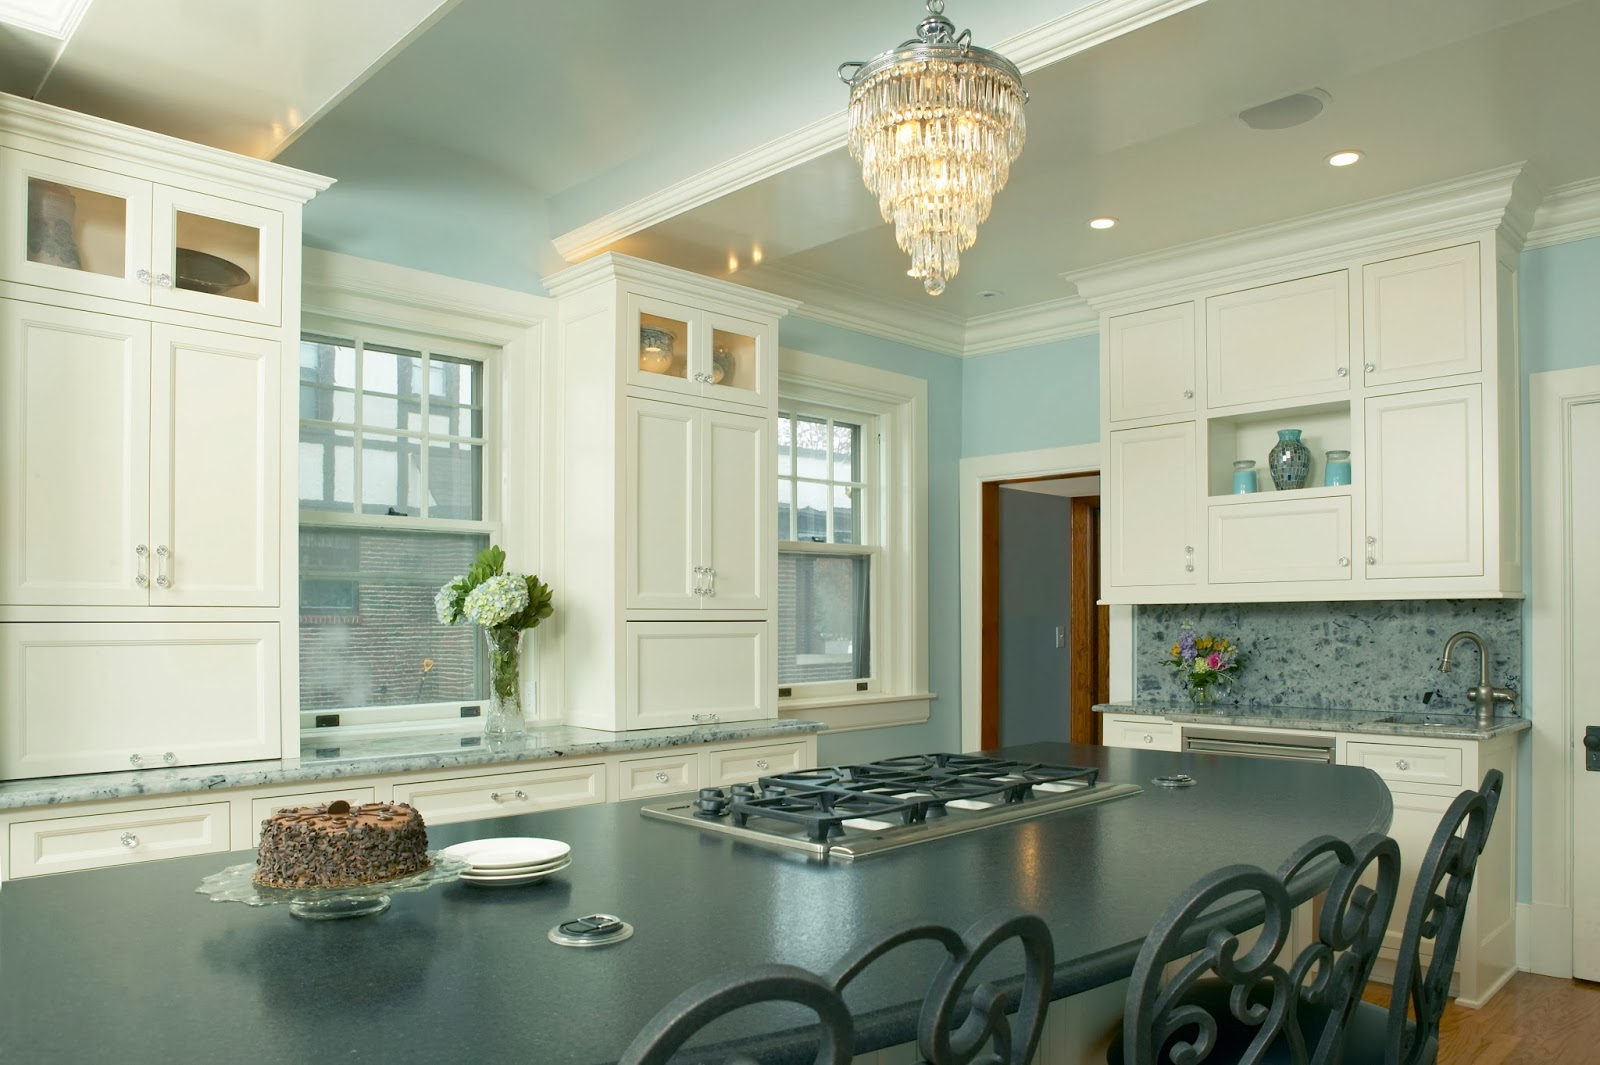 Hearthwood Kitchens: Cabinet Finishes 101